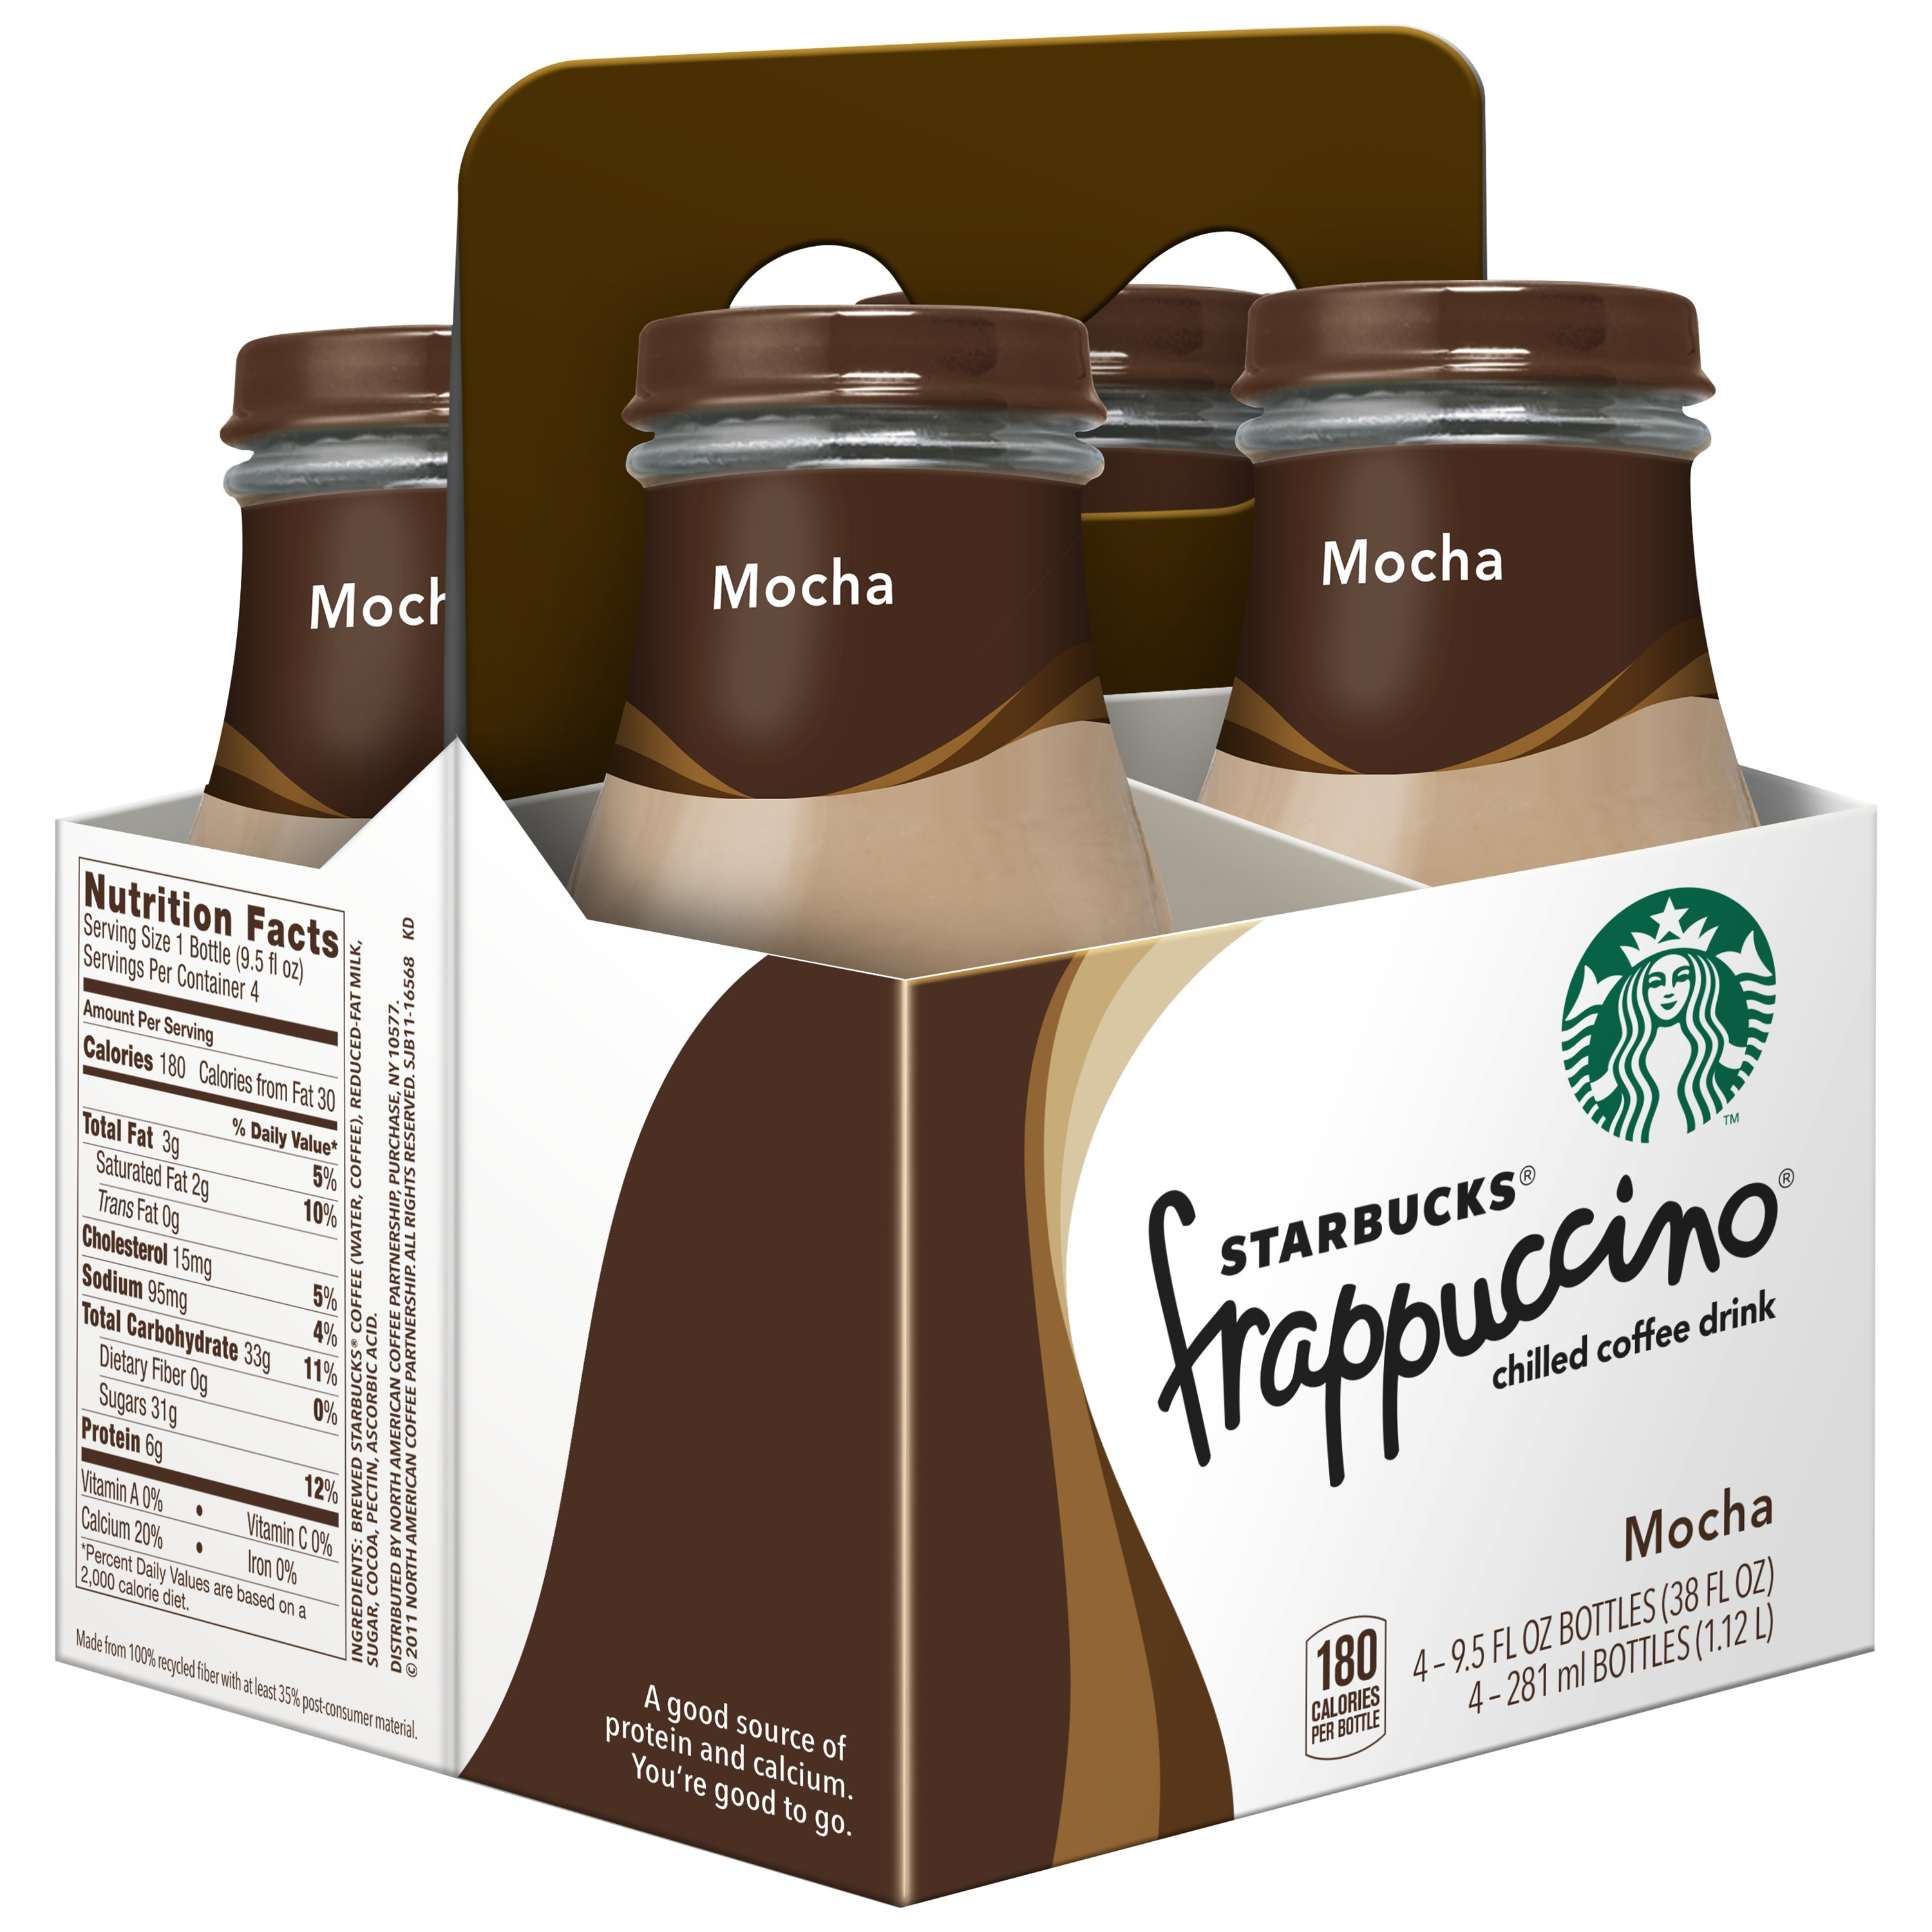 (4 Count) Starbucks Frappuccino Coffee Drink, Mocha, 9.5 oz Bottles